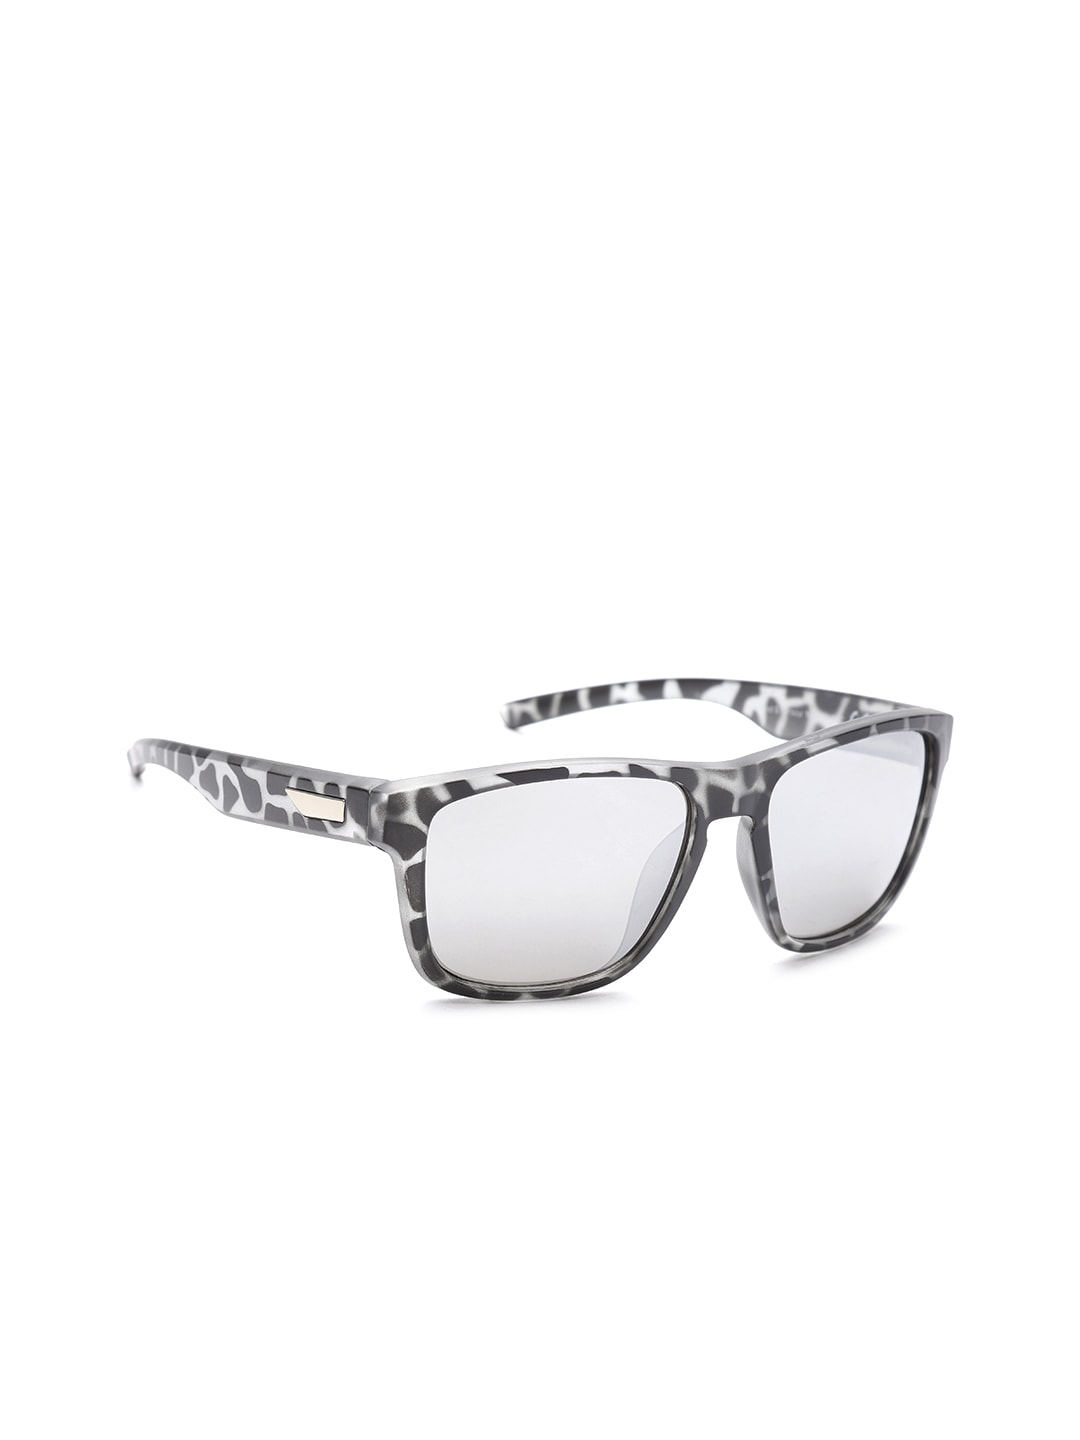 00e9f475949 Here To Sunglasses 3 D India - Buy Here To Sunglasses 3 D India online in  India